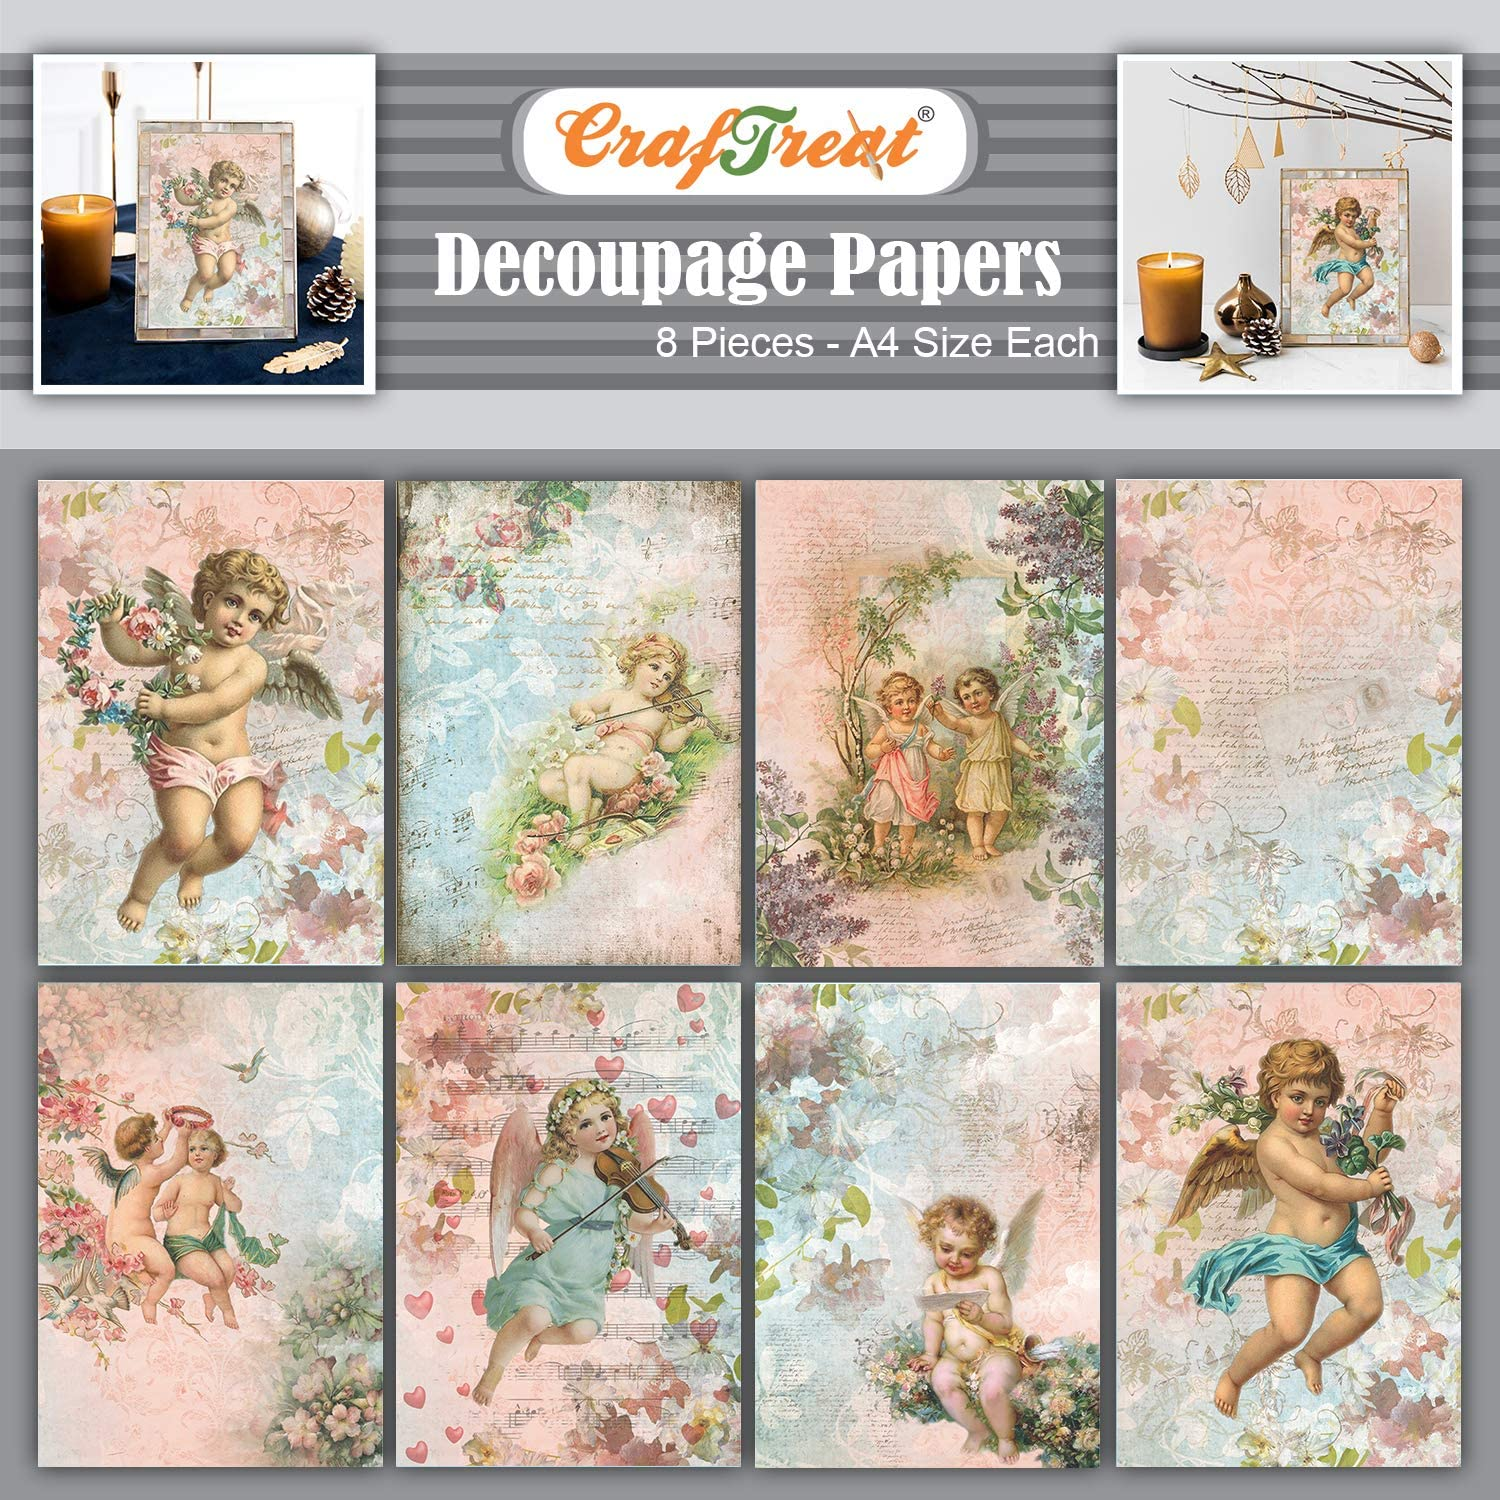 CrafTreat Angel Decoupage Paper for Crafts and Scrapbooking - Angel Set I and II - Size: A4-8 Pcs - Decoupage Paper Angels - Decoupage Paper for Furniture